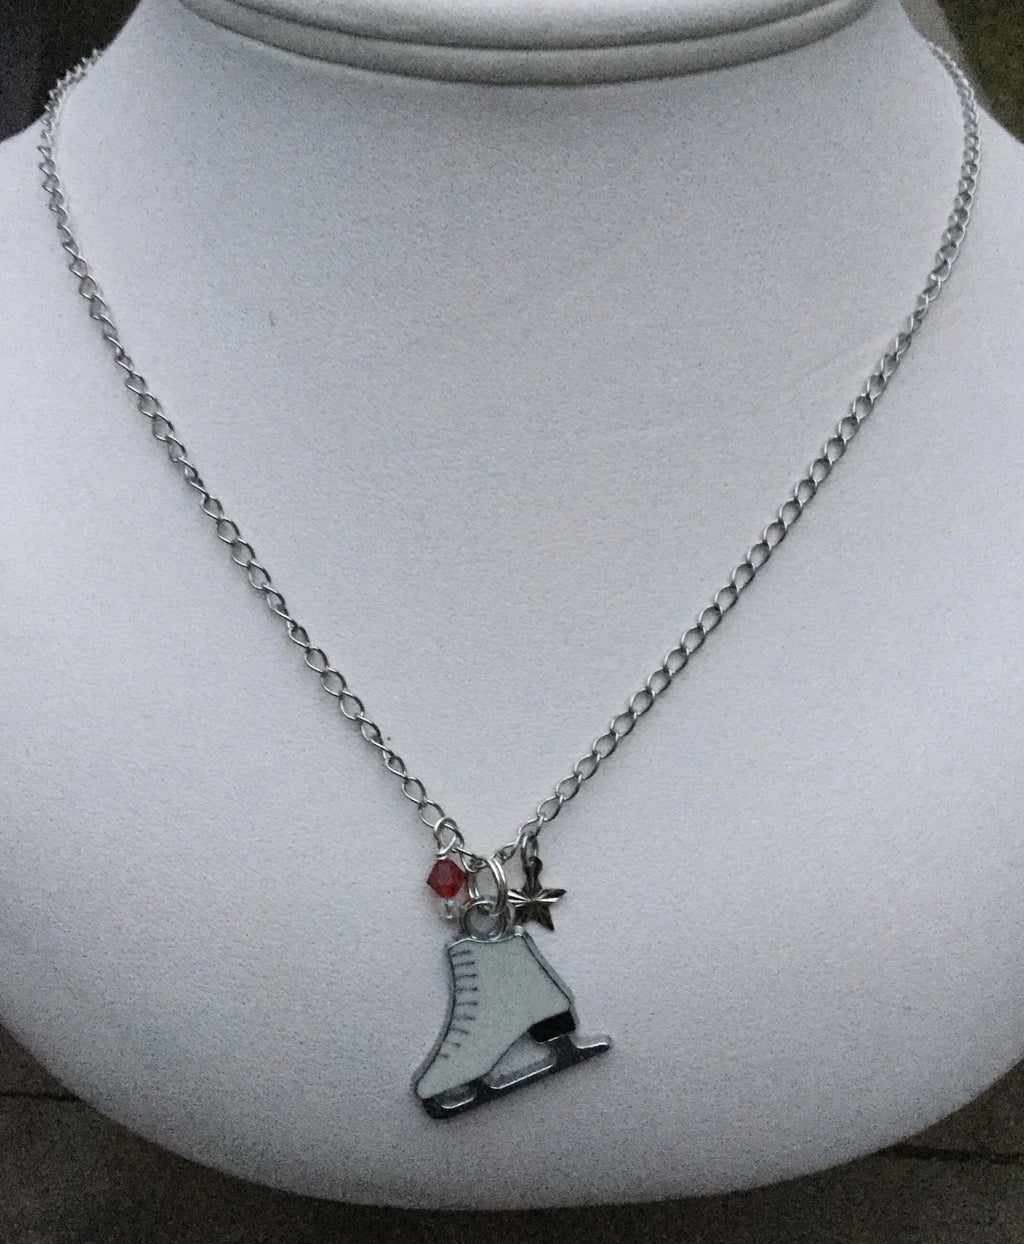 Handmade Skating Necklace